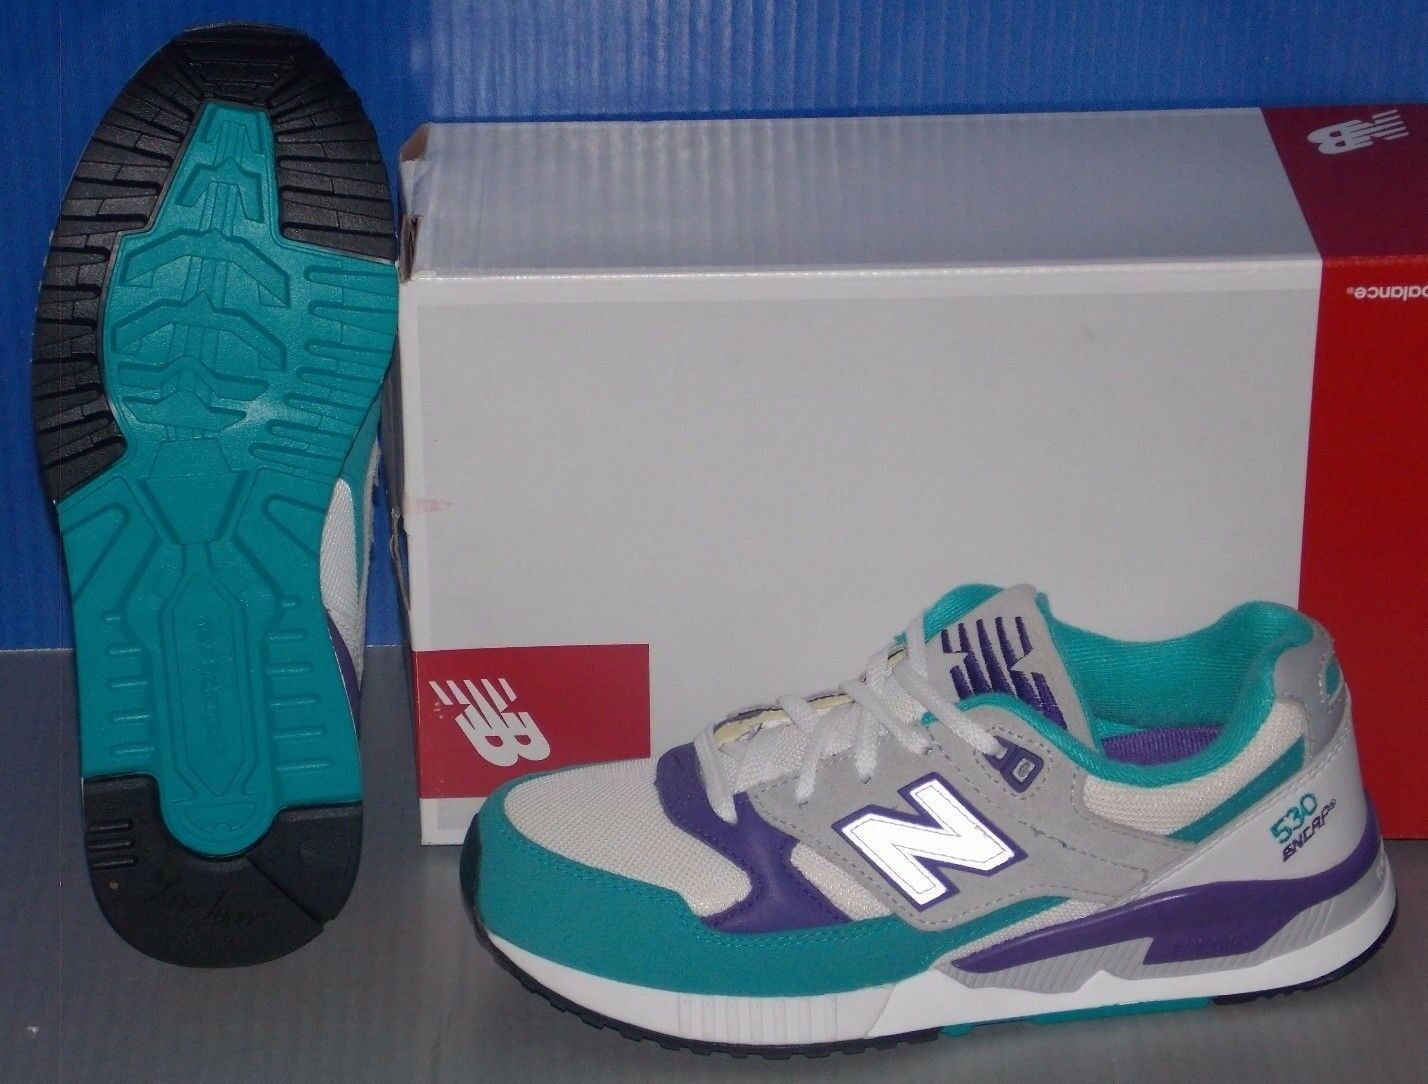 Damenschuhe NEW BALANCE colors W 530 AAA in colors BALANCE Weiß / TEAL / GREY SIZE 7 1d7620